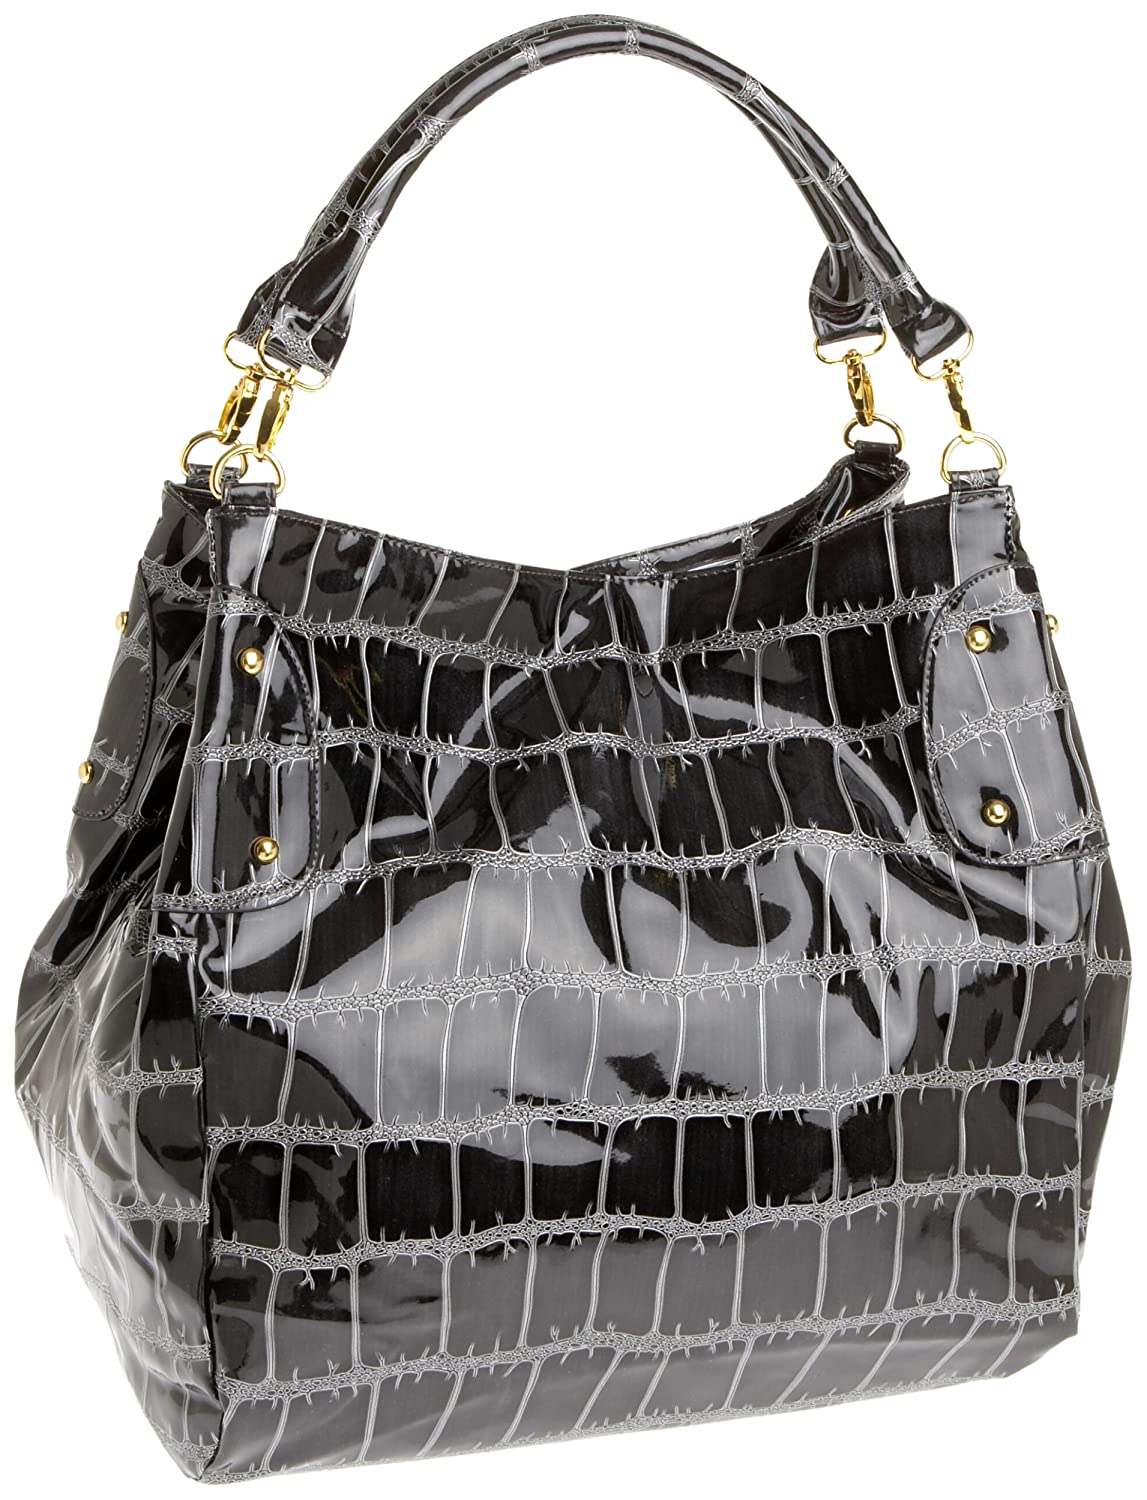 Big Buddha Union Satchel: Oversized Bags from endless.com